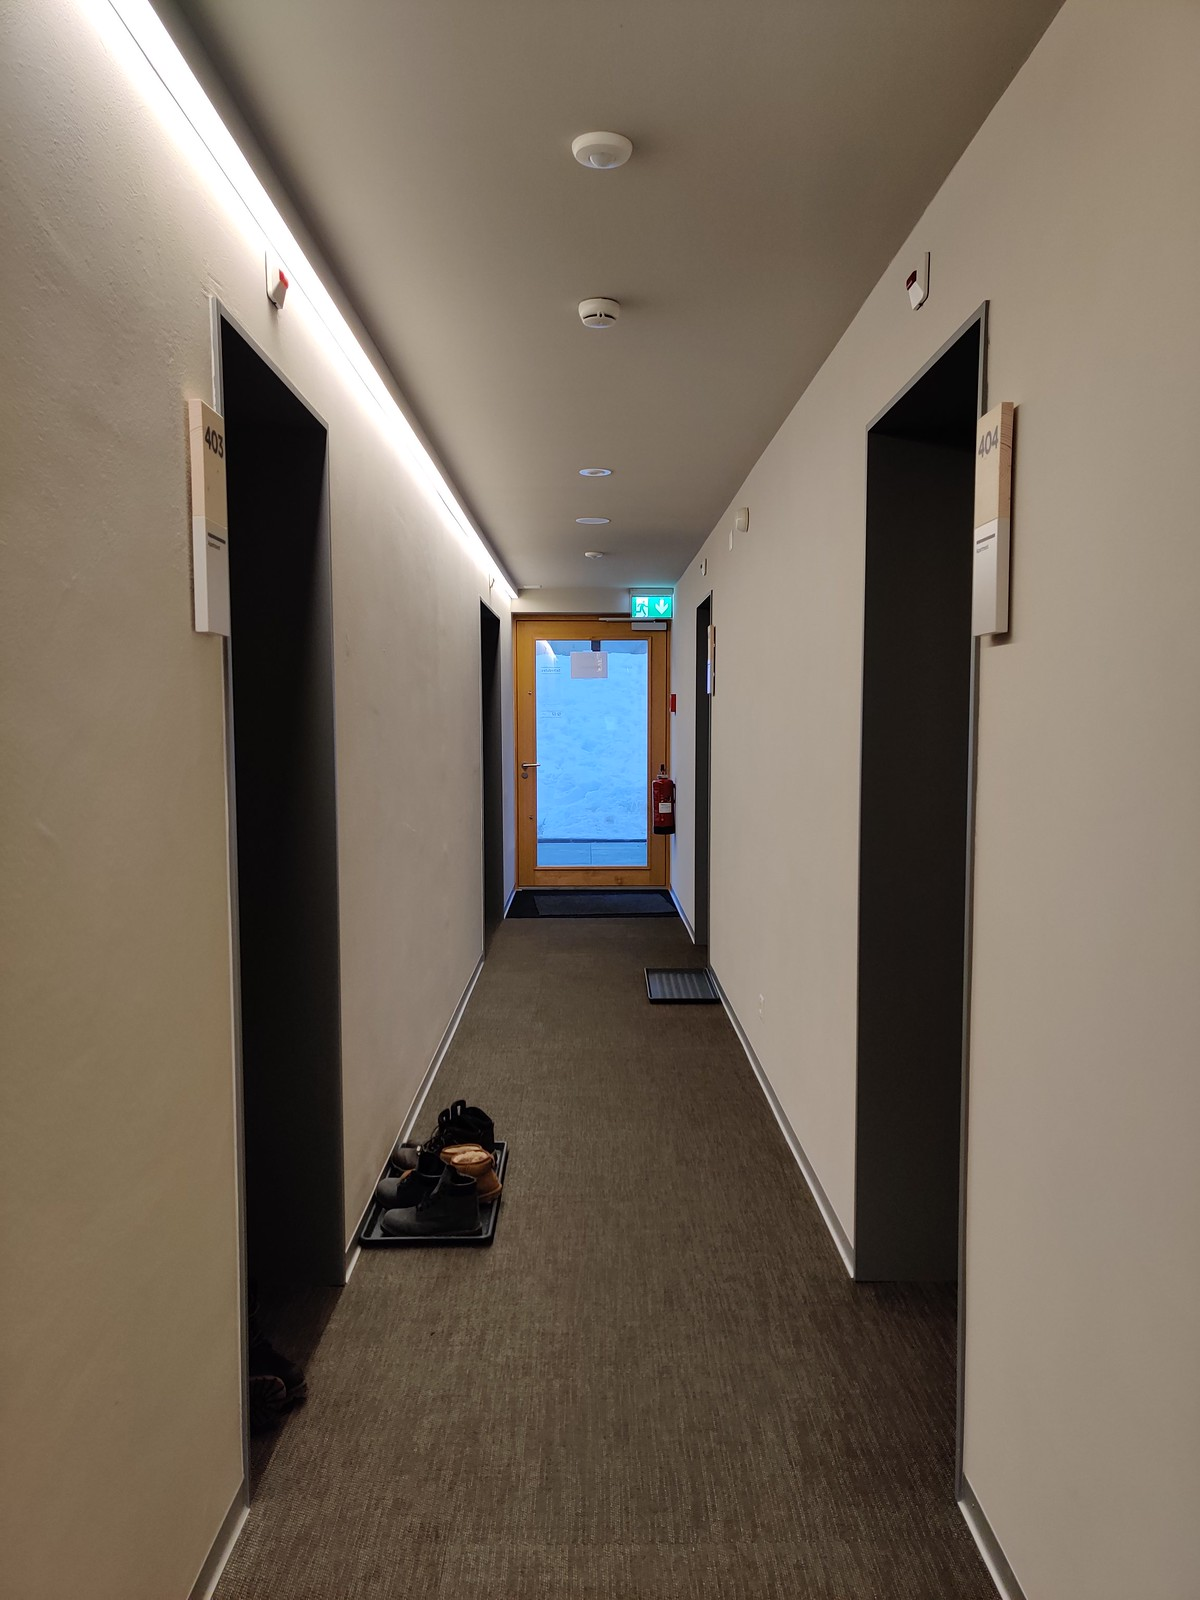 Corridor with rubber mats